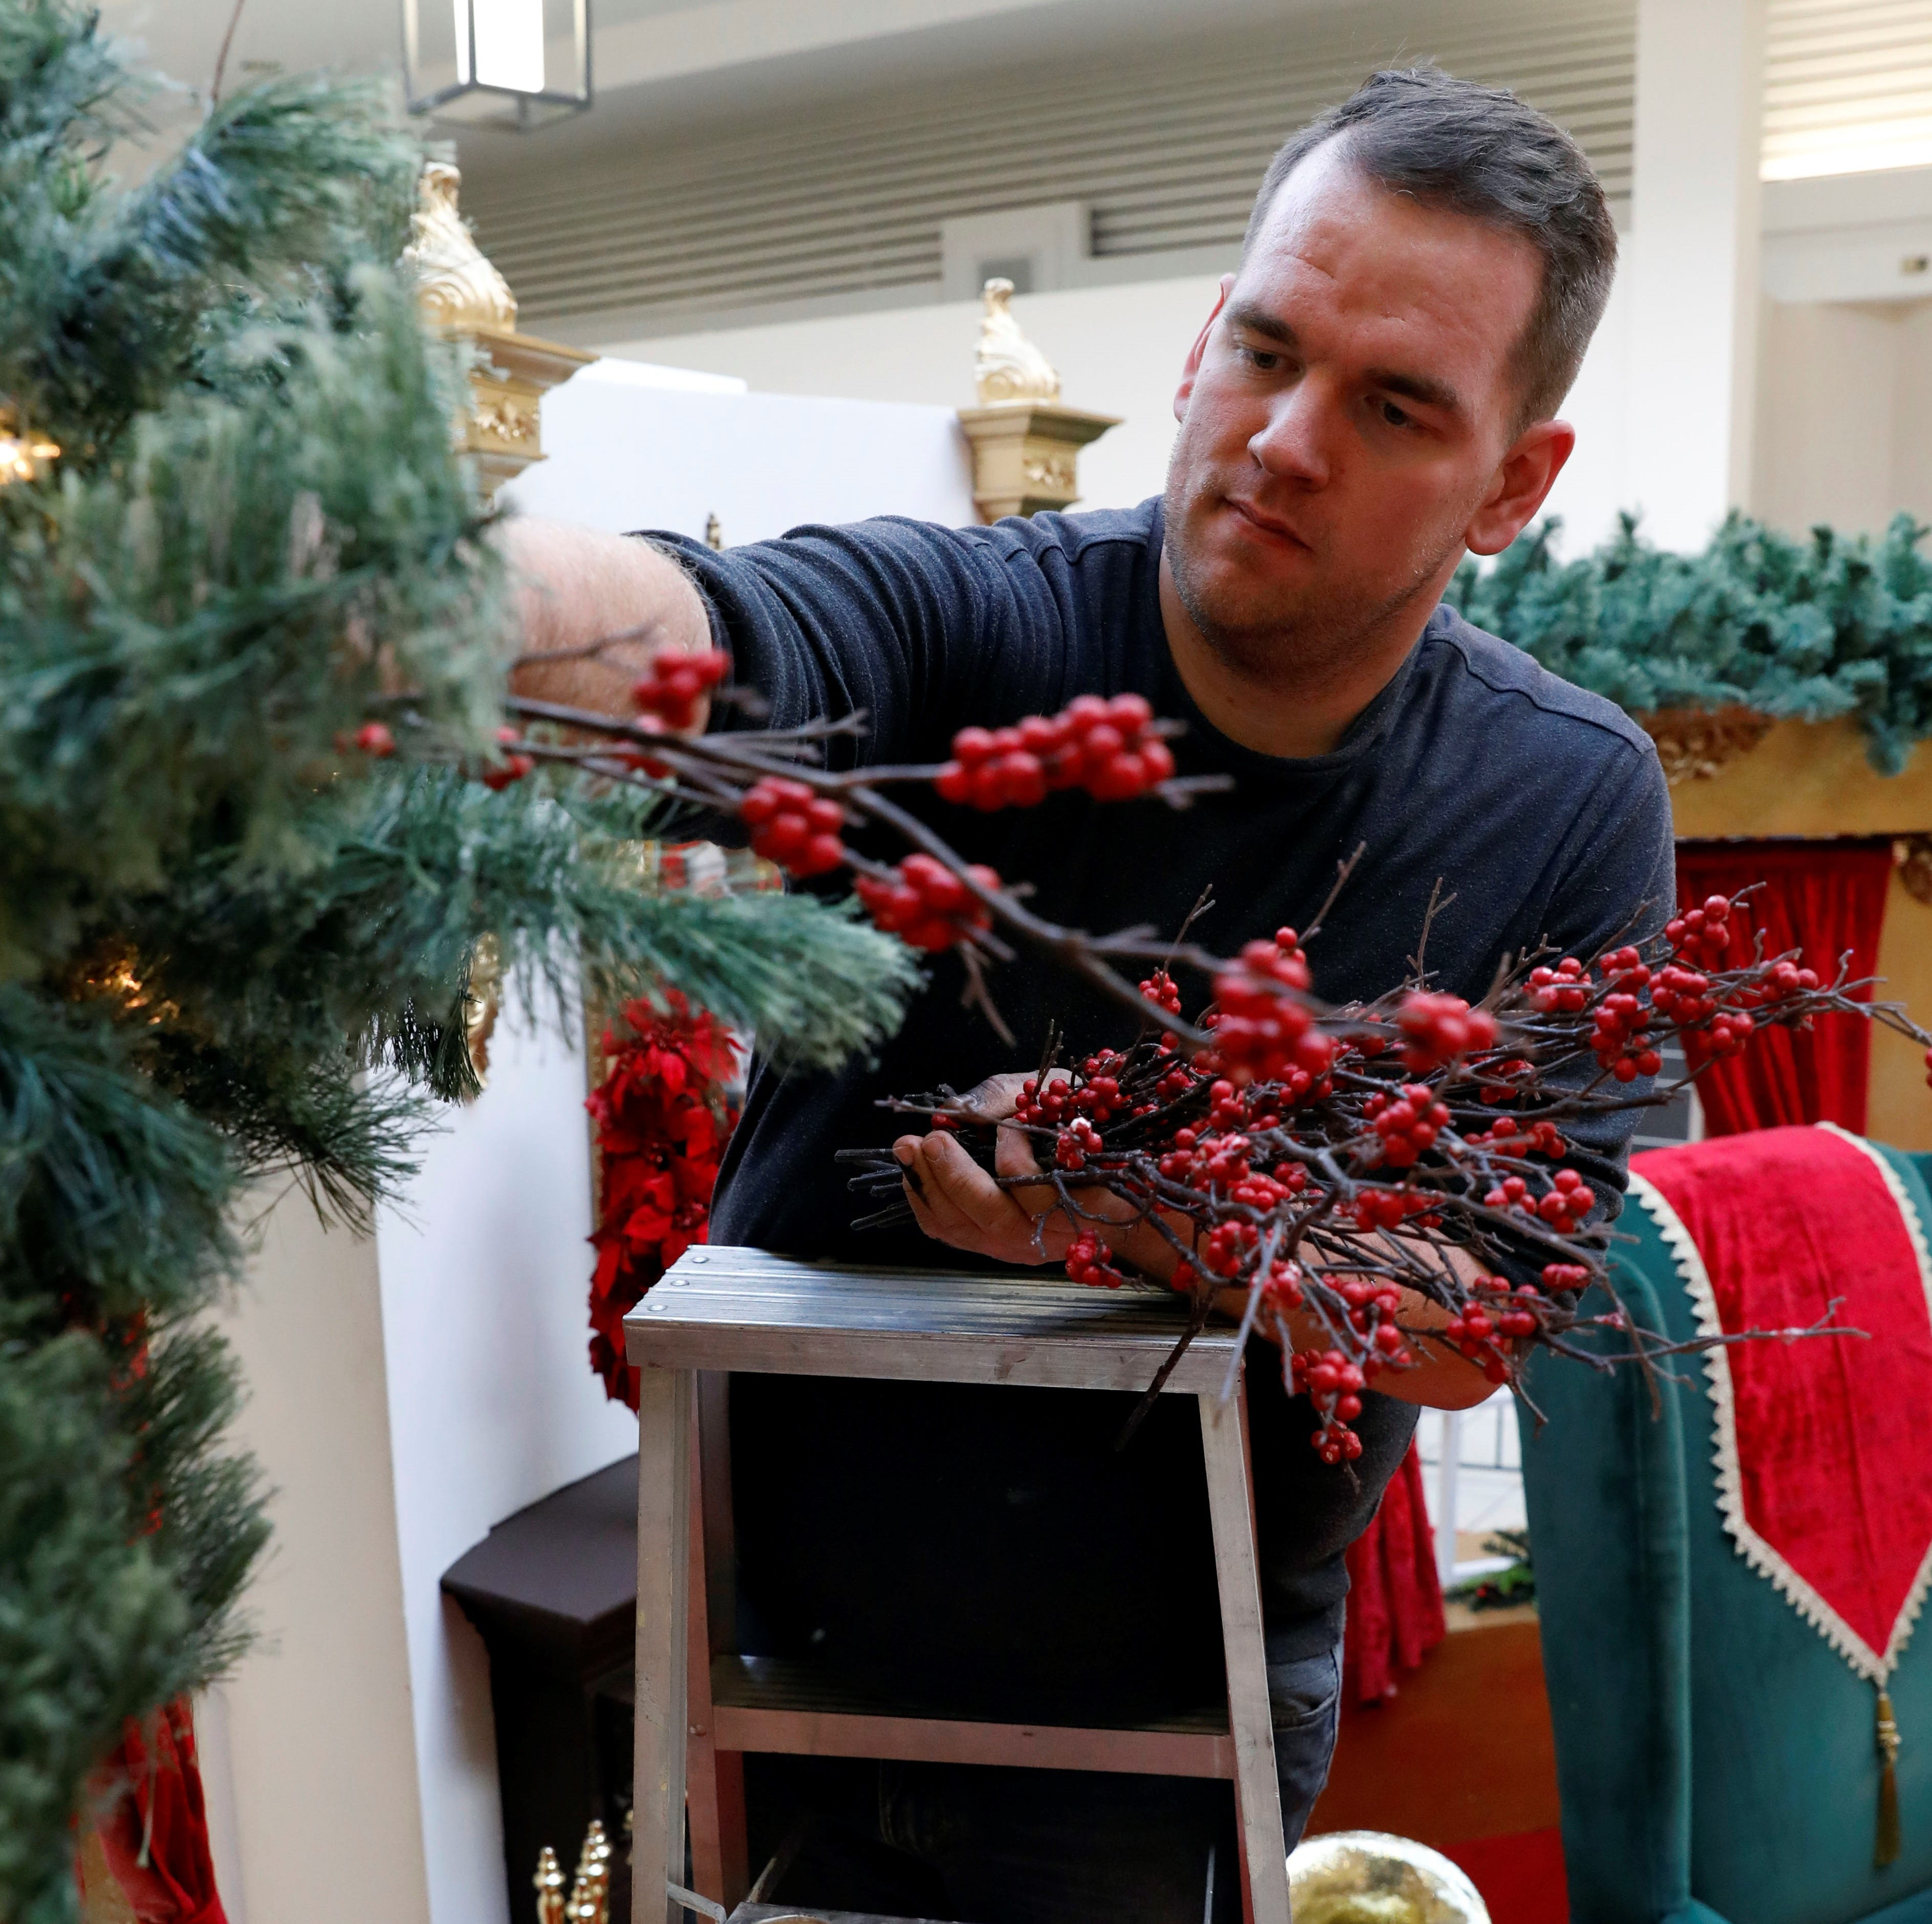 A dream comes true: Caleb McCarthy heads to the White House to decorate for the holidays